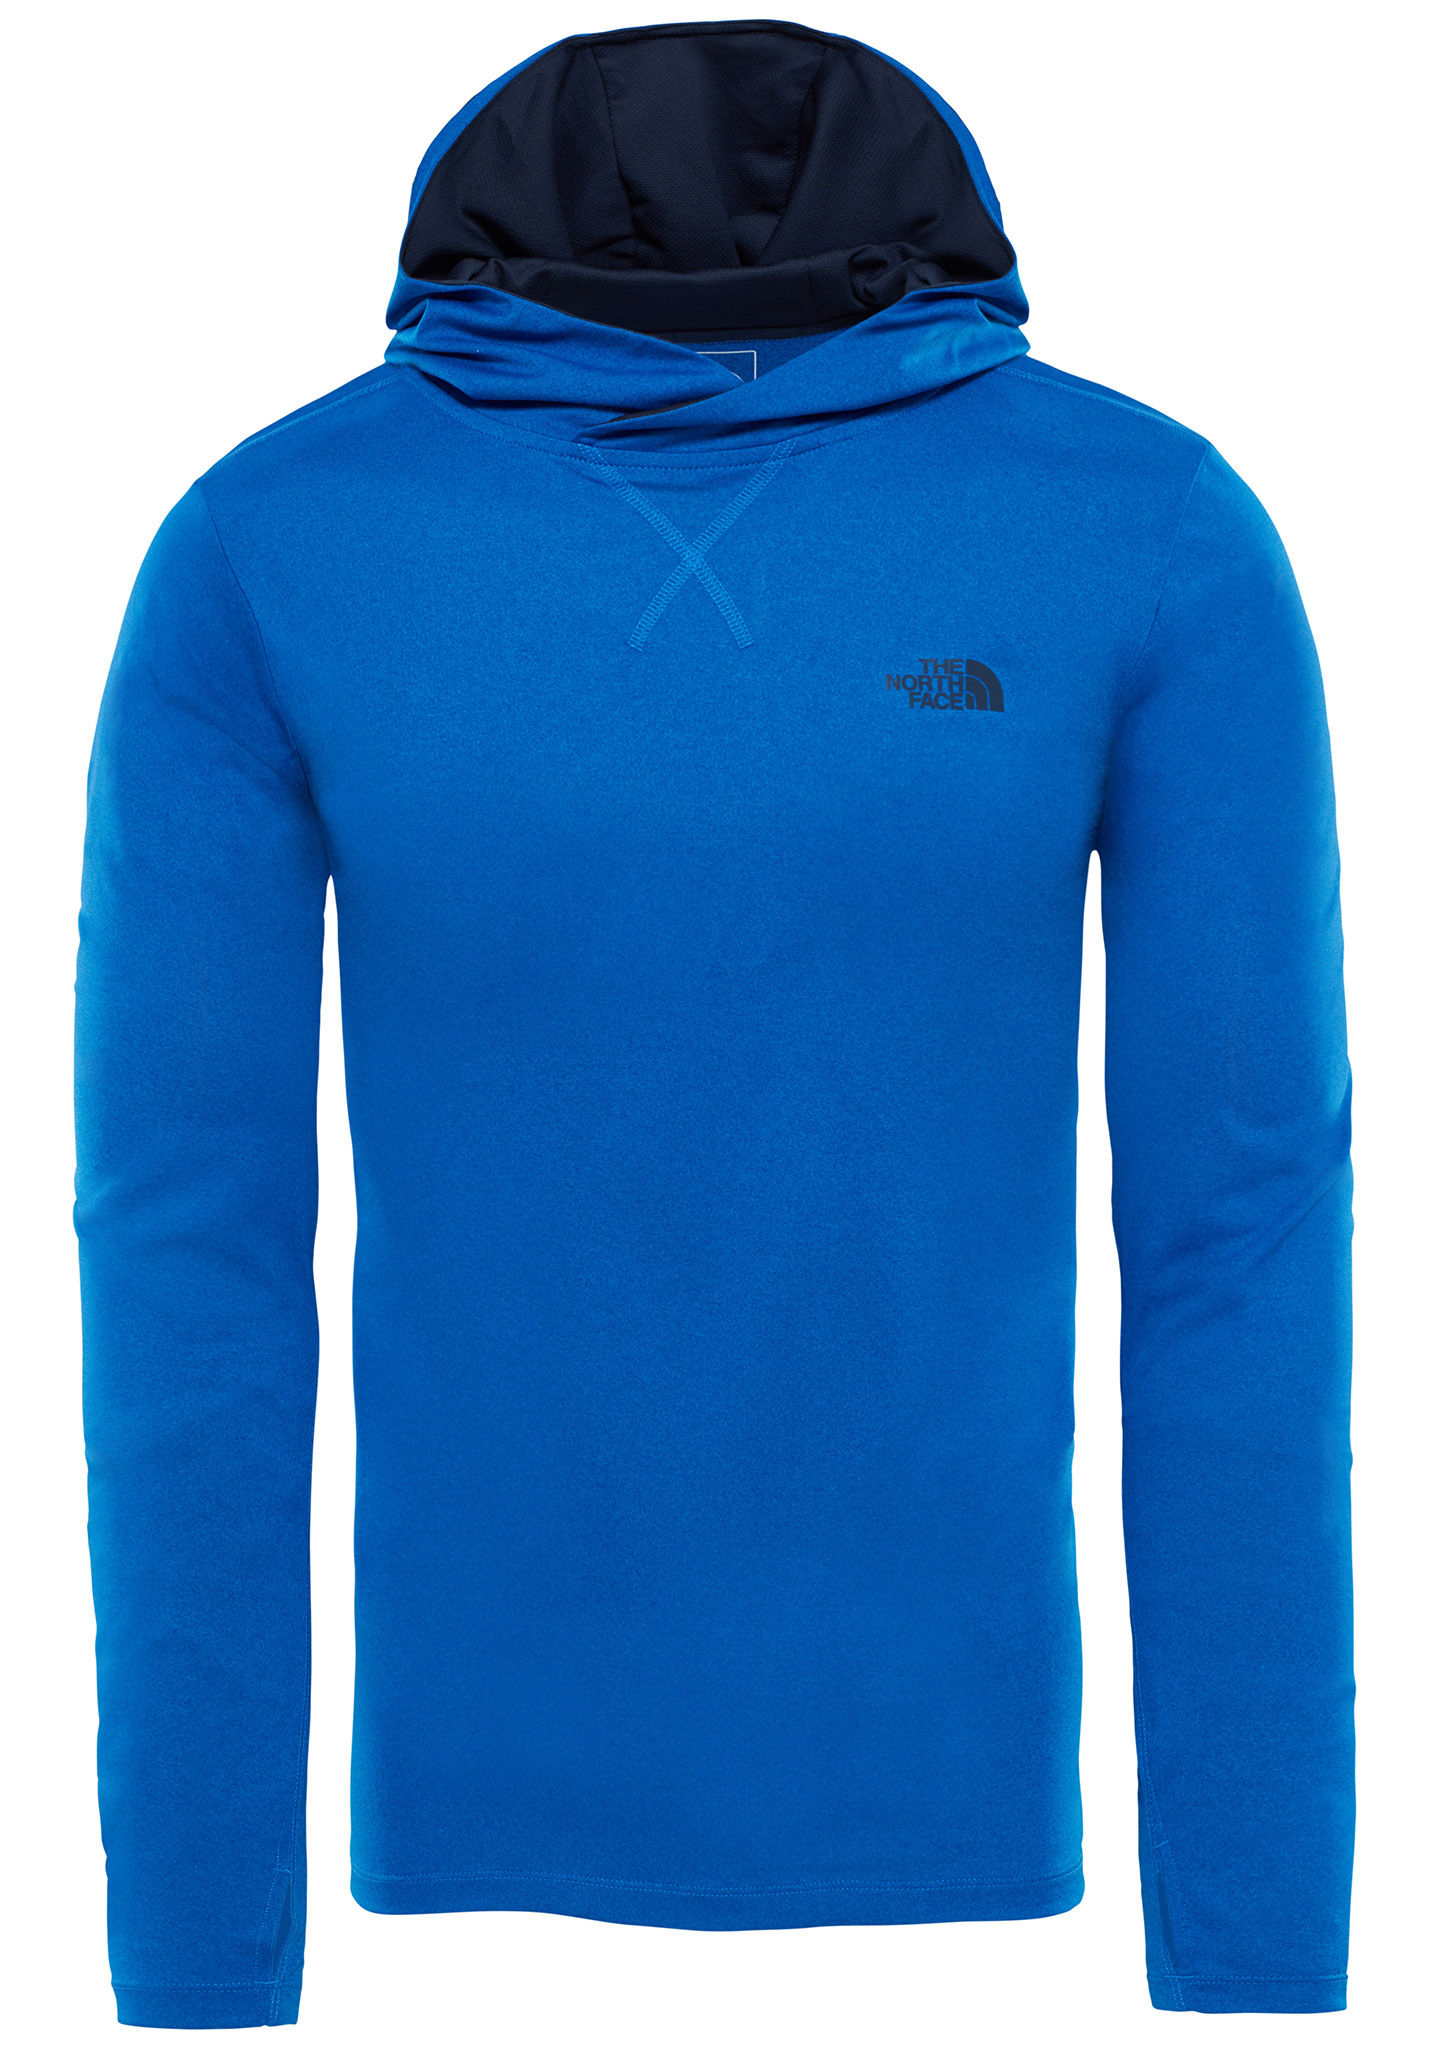 b865d87d4 THE NORTH FACE Reactor - Hooded Sweatshirt for Men - Blue